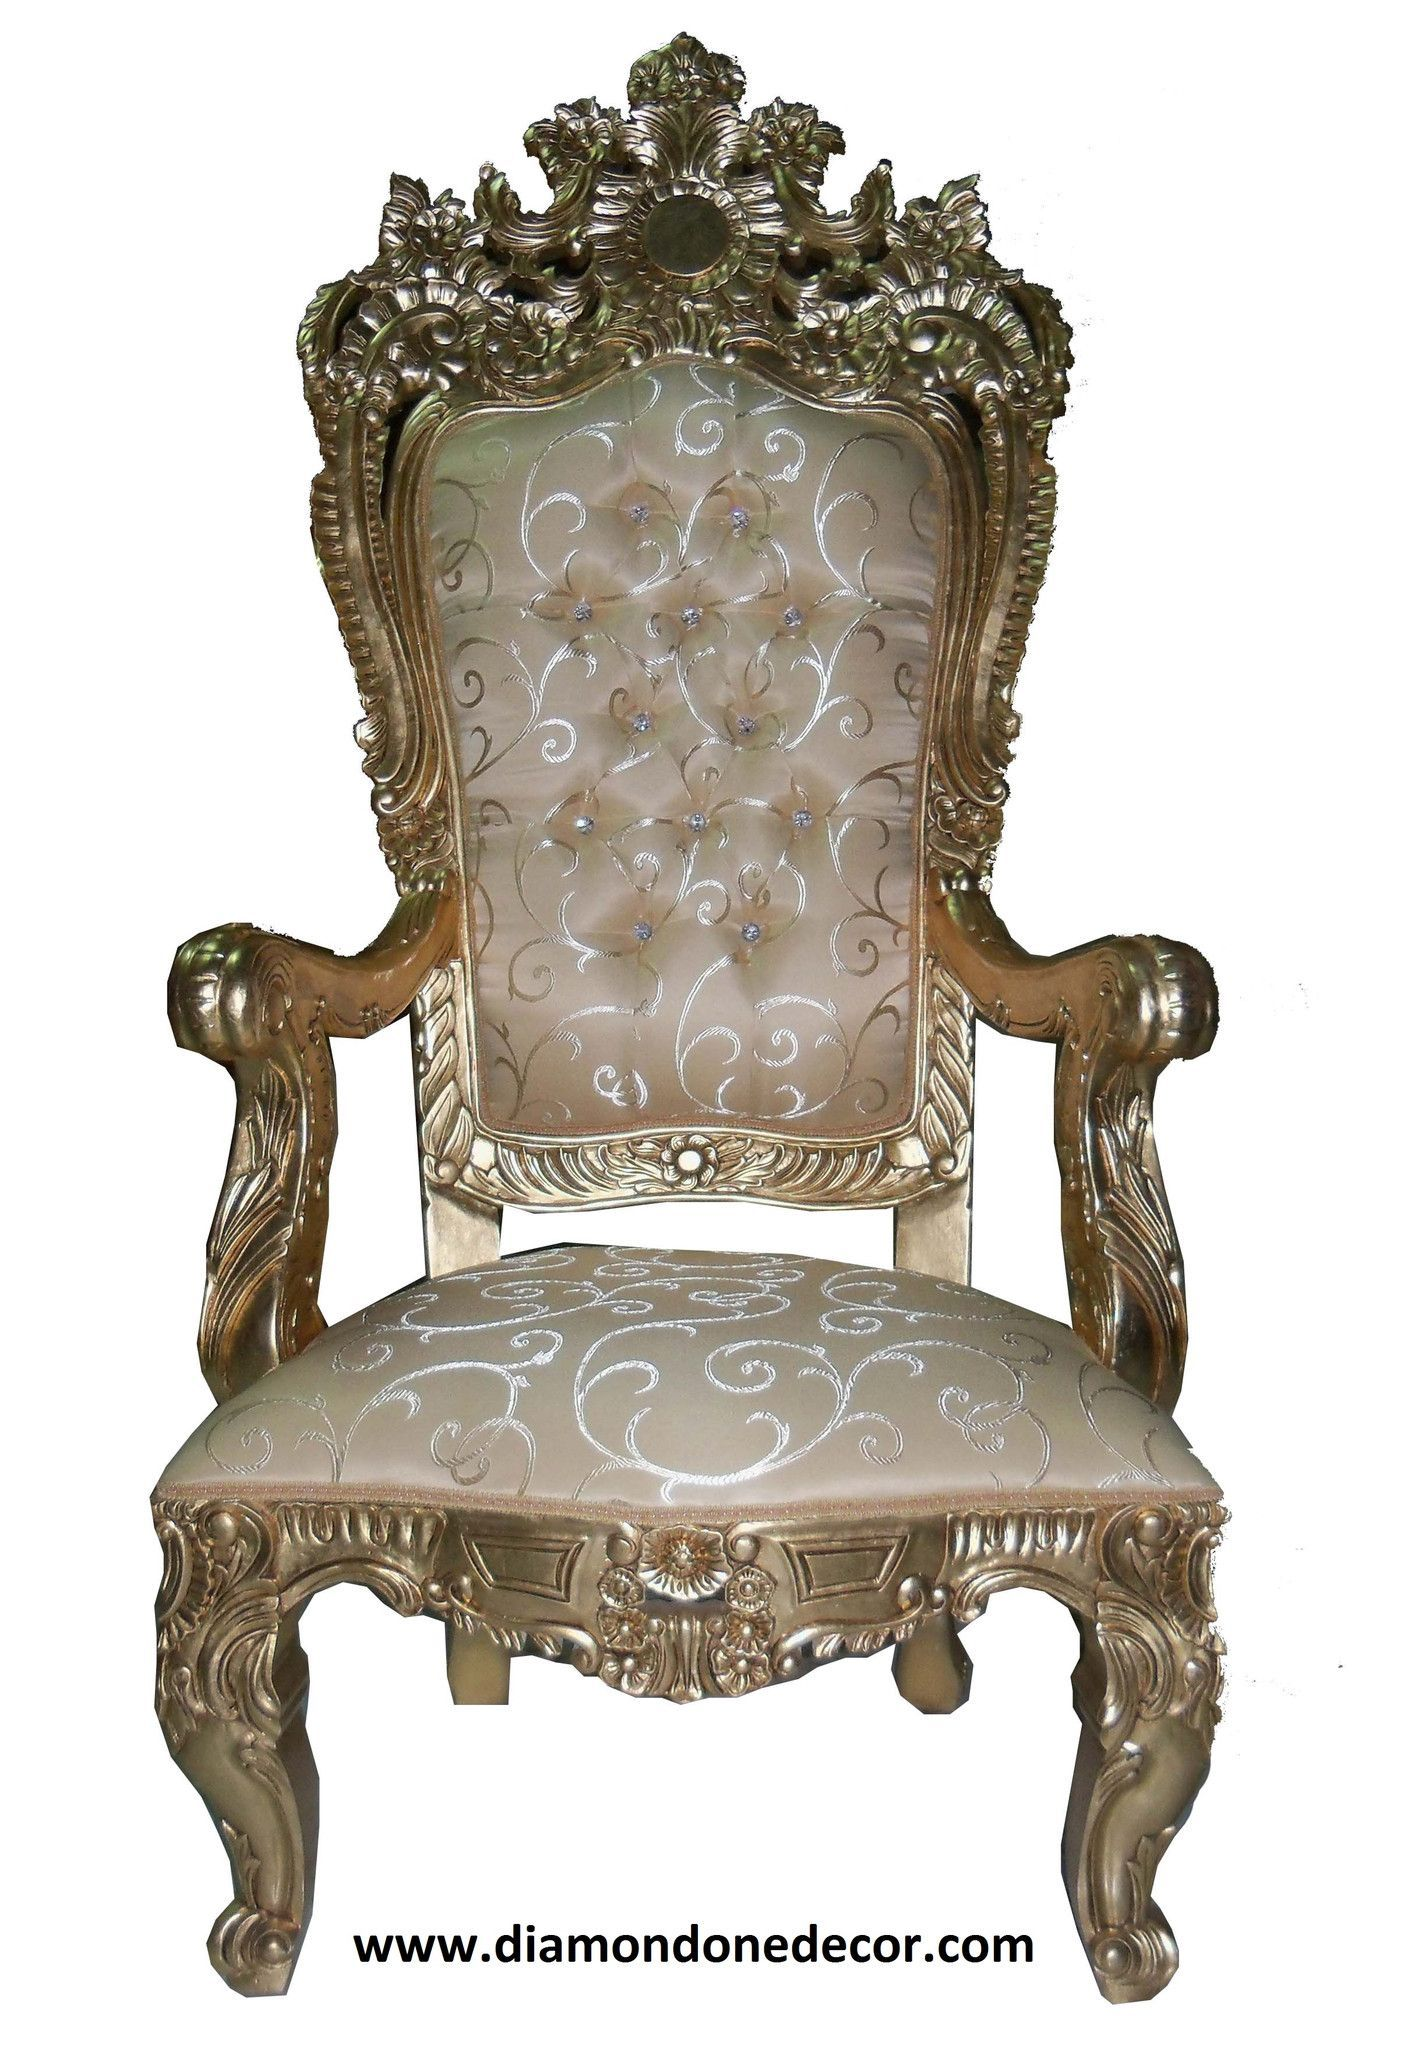 Exquisite mahogany hand carved Louis XVI Baroque French Reproduction Throne  chair with gold leaf finish - Exquisite Hand-Carved Mahogany Louis XVI Baroque French Reproduction